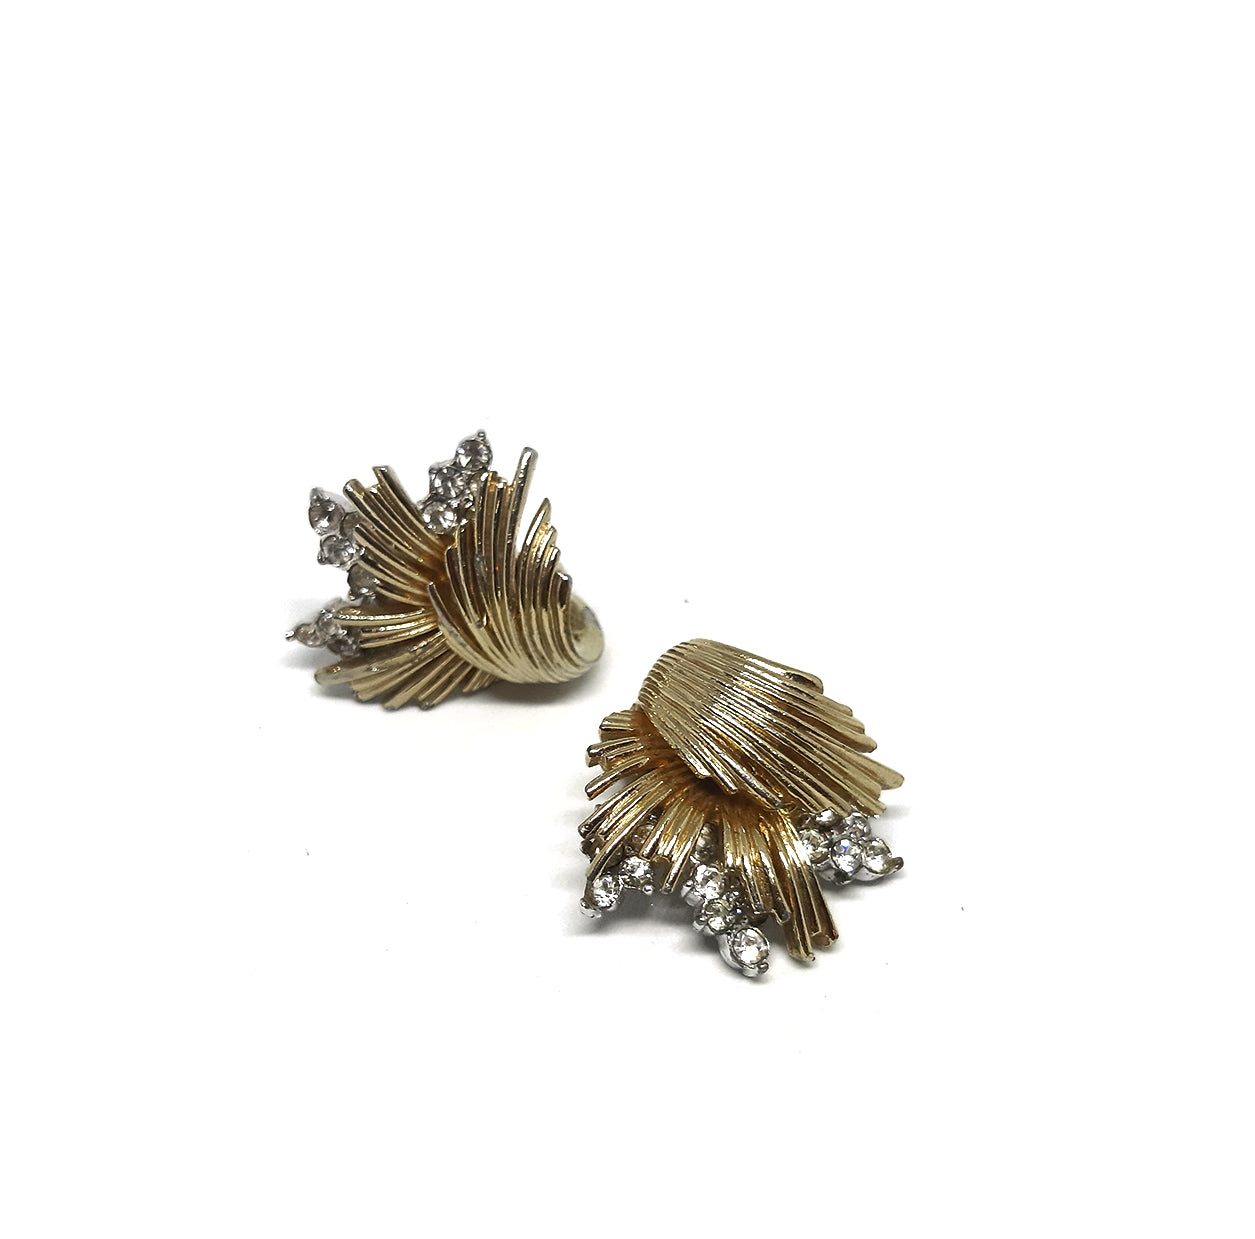 Vintage Goldtone Line Textured Clip Earrings with Small Rhinestones